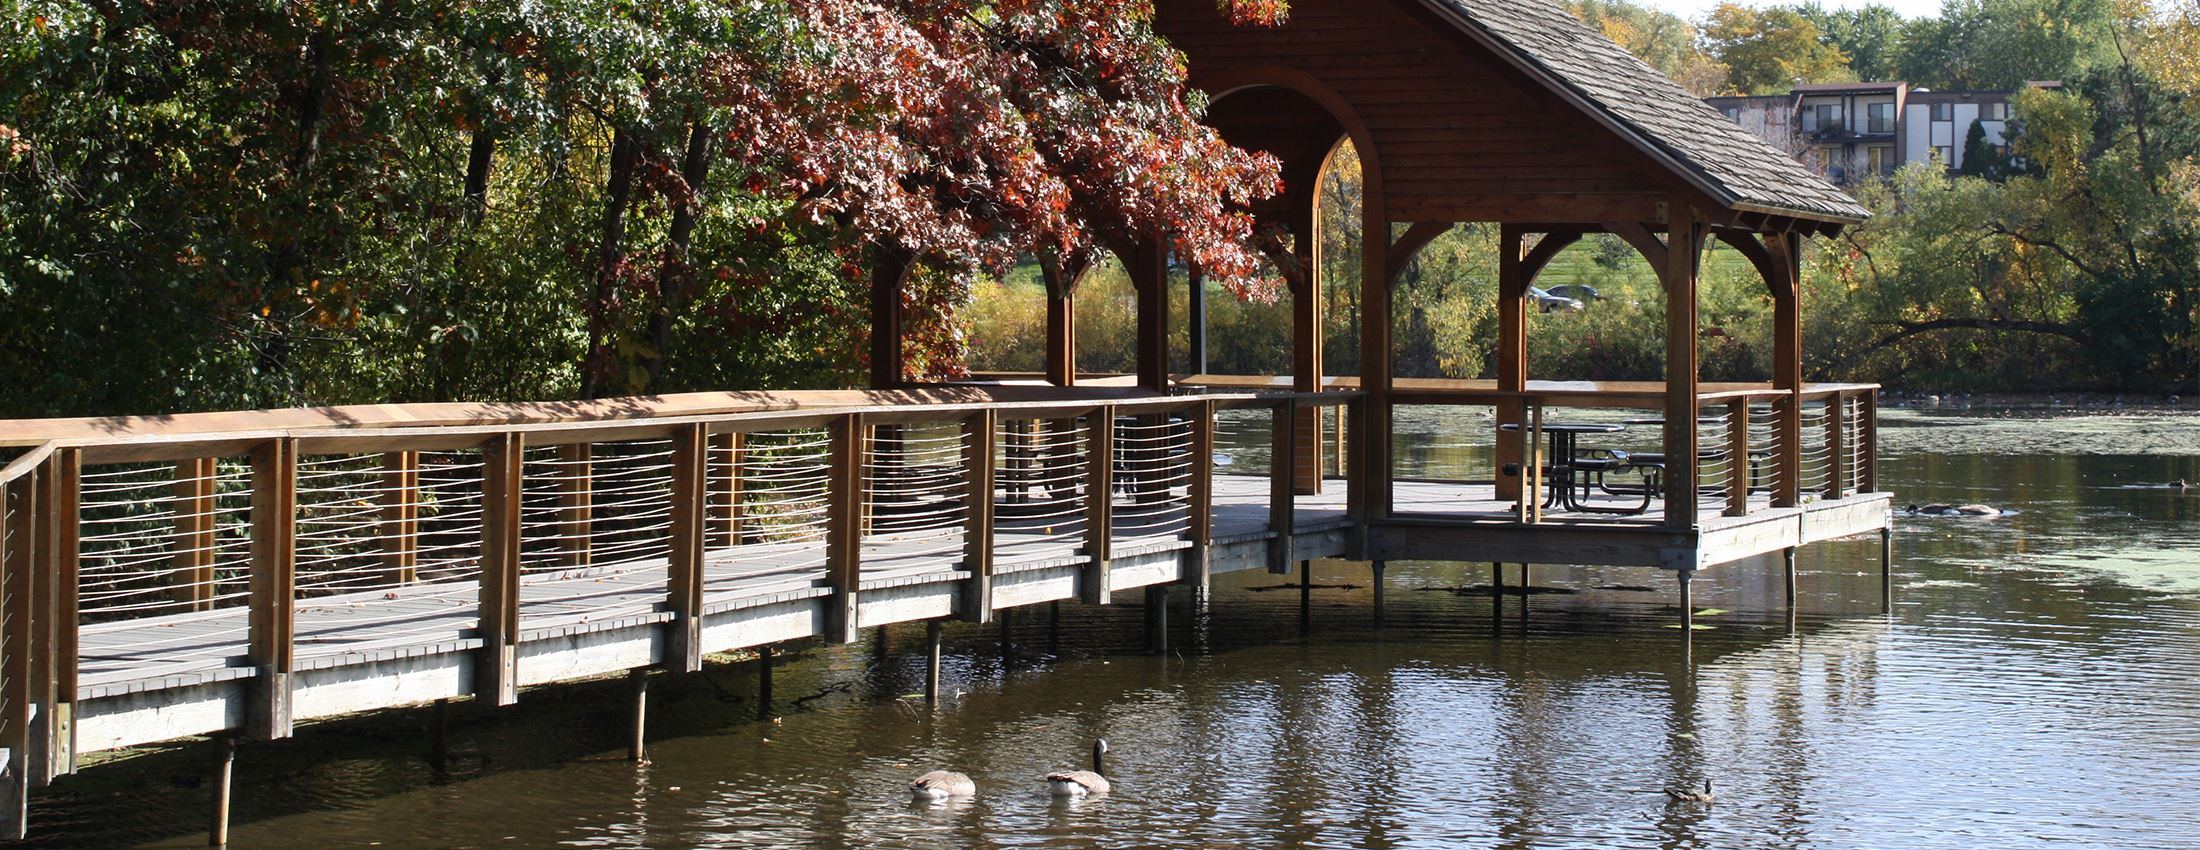 Wooden bridge and covered gazebo on a pond in Crosstown West Park